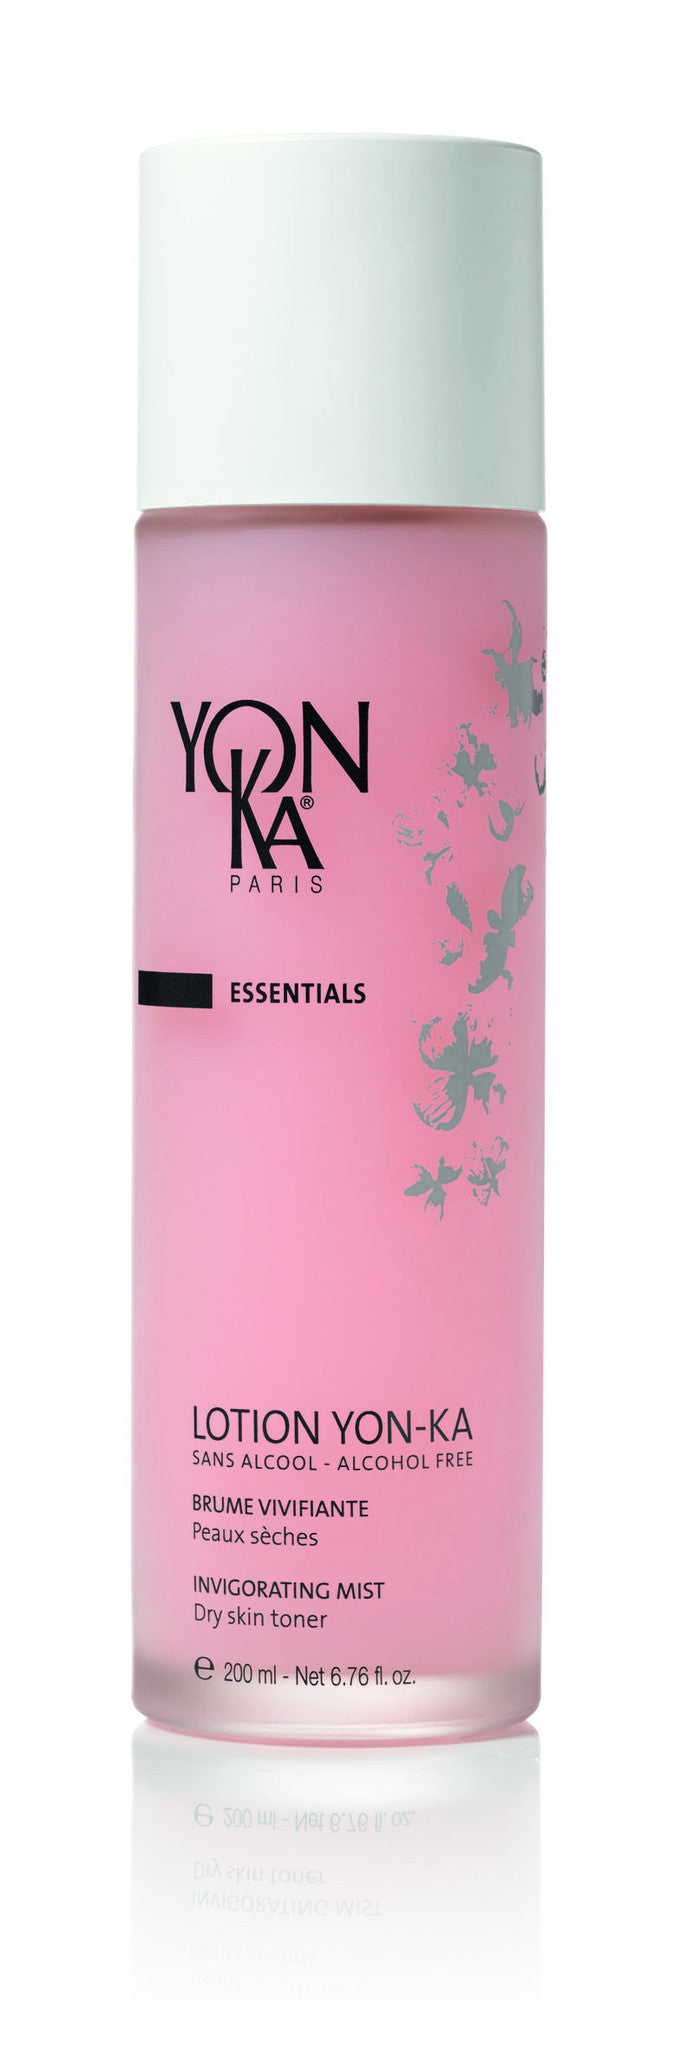 LOTION YON-KA NORMAL TO OILY SKIN by YON-KA